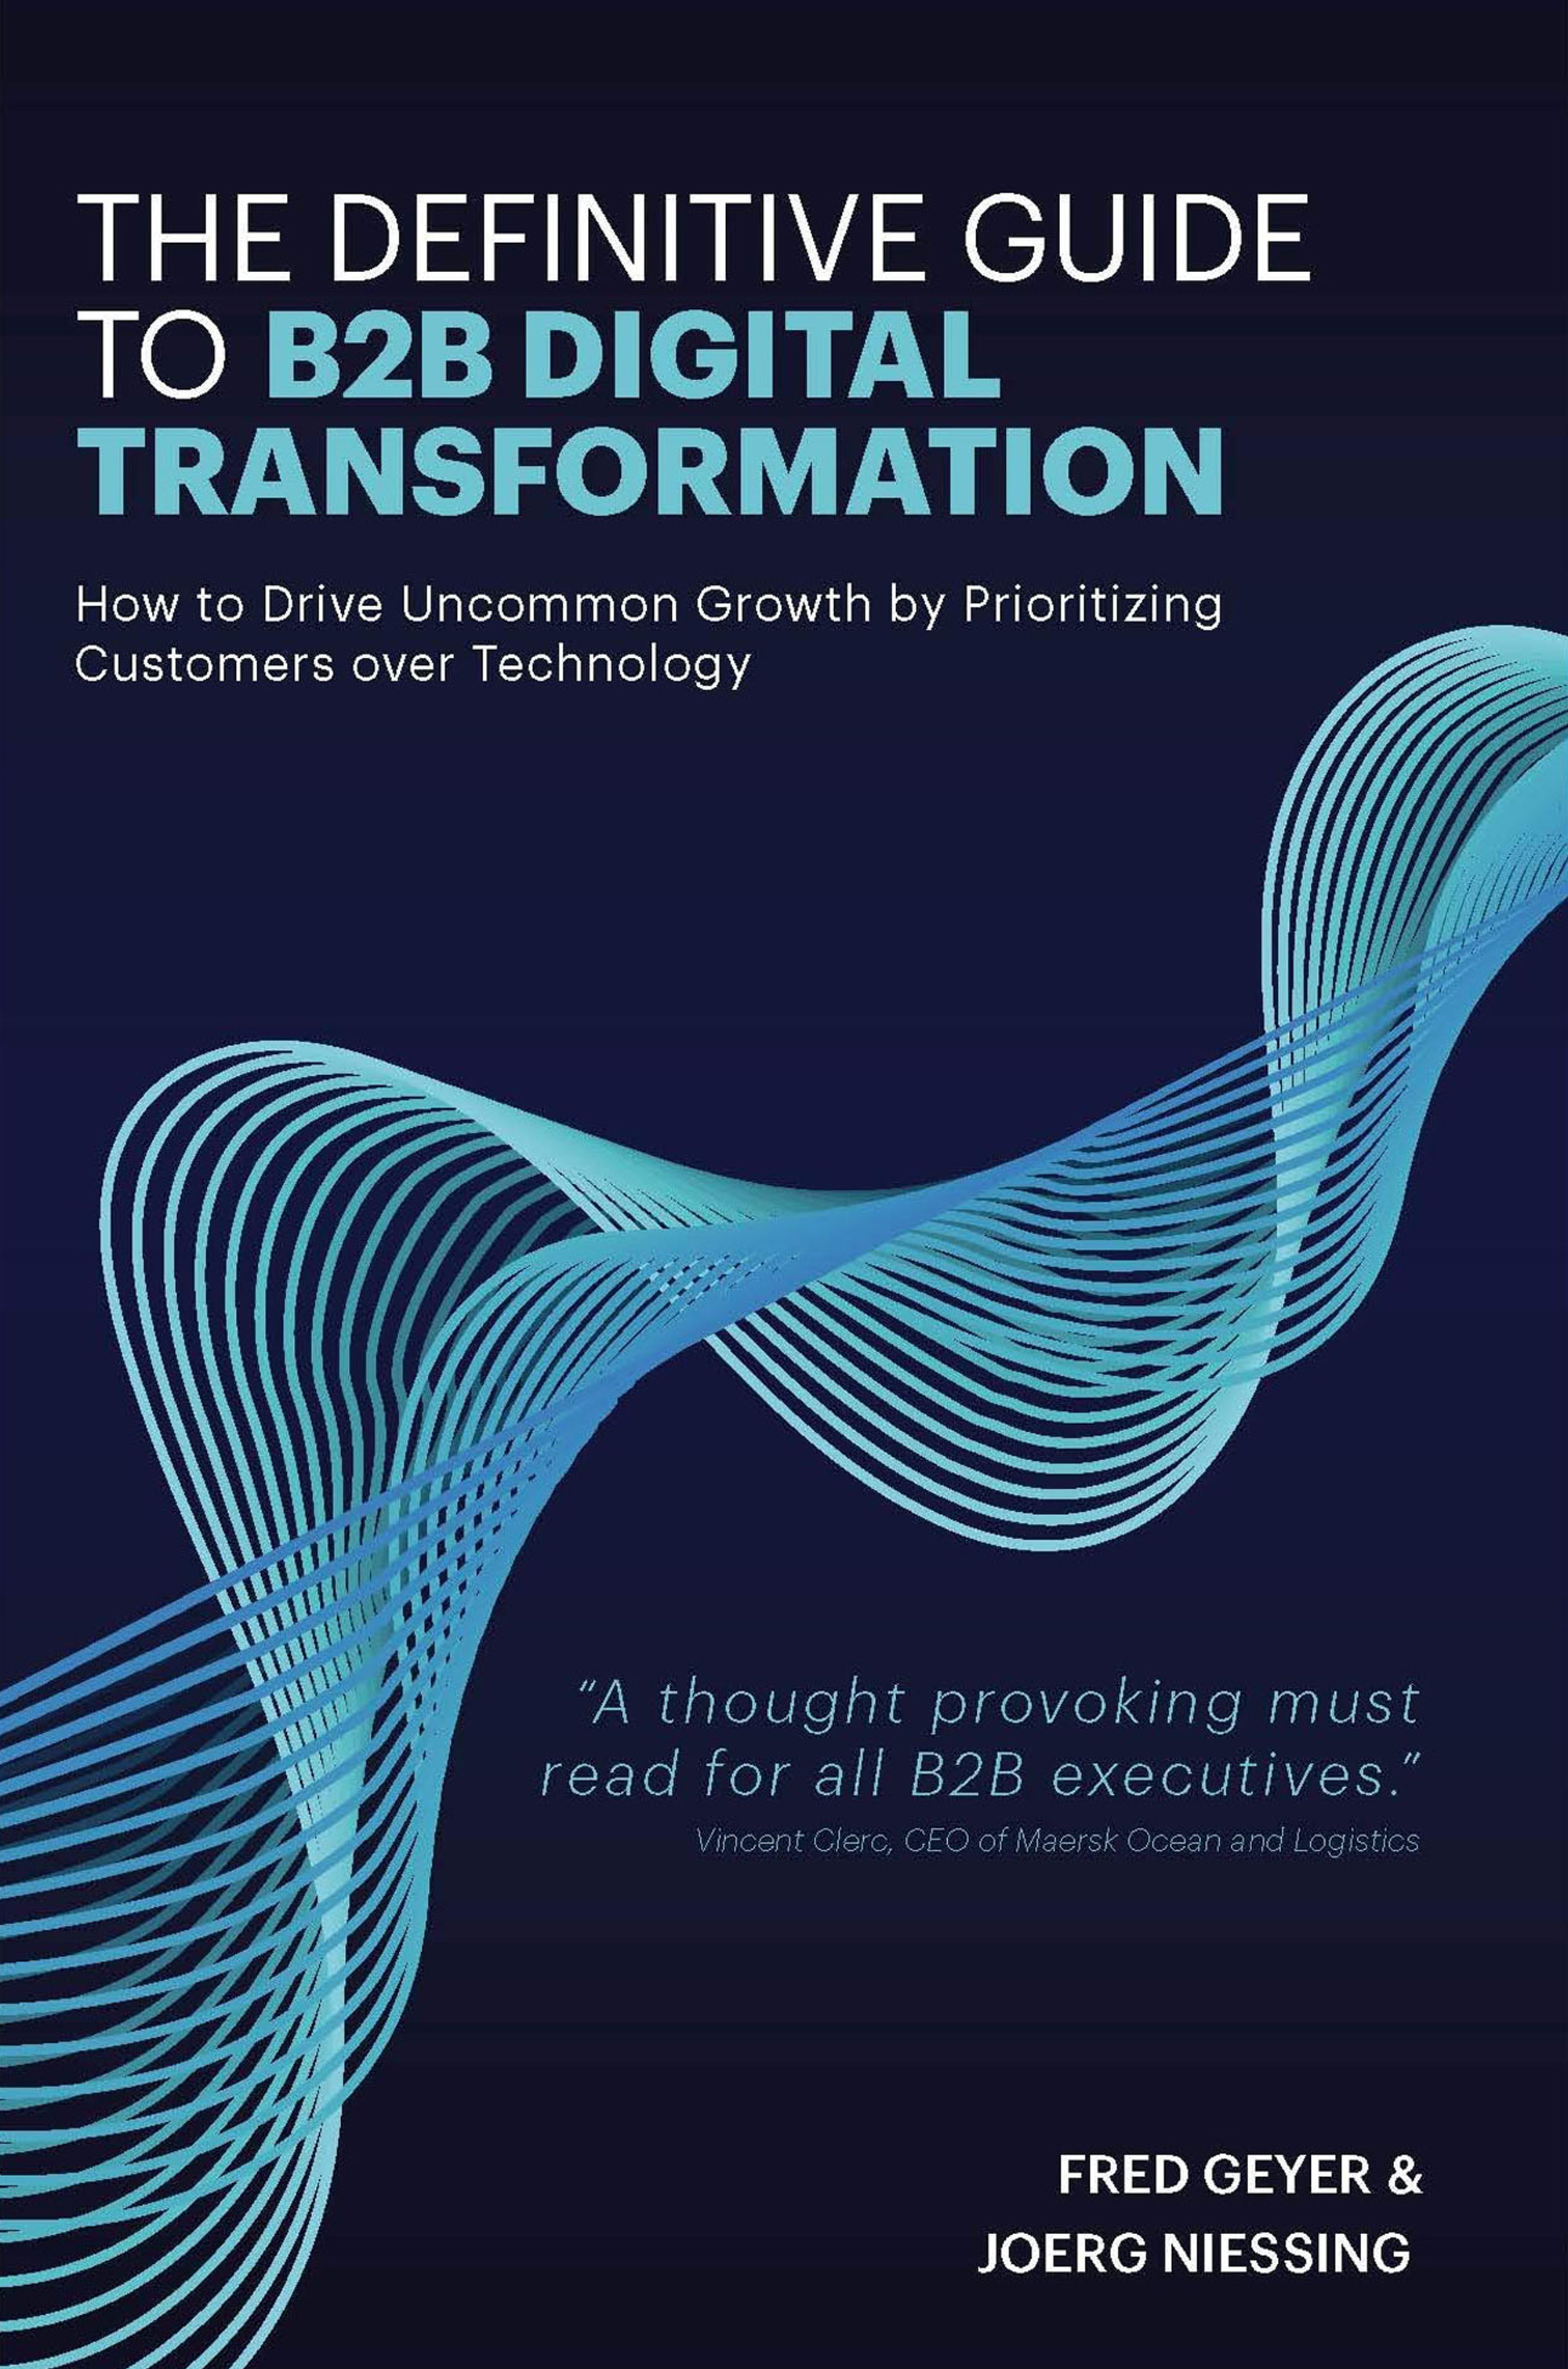 The Definitive Guide To B2B Digital Transformation